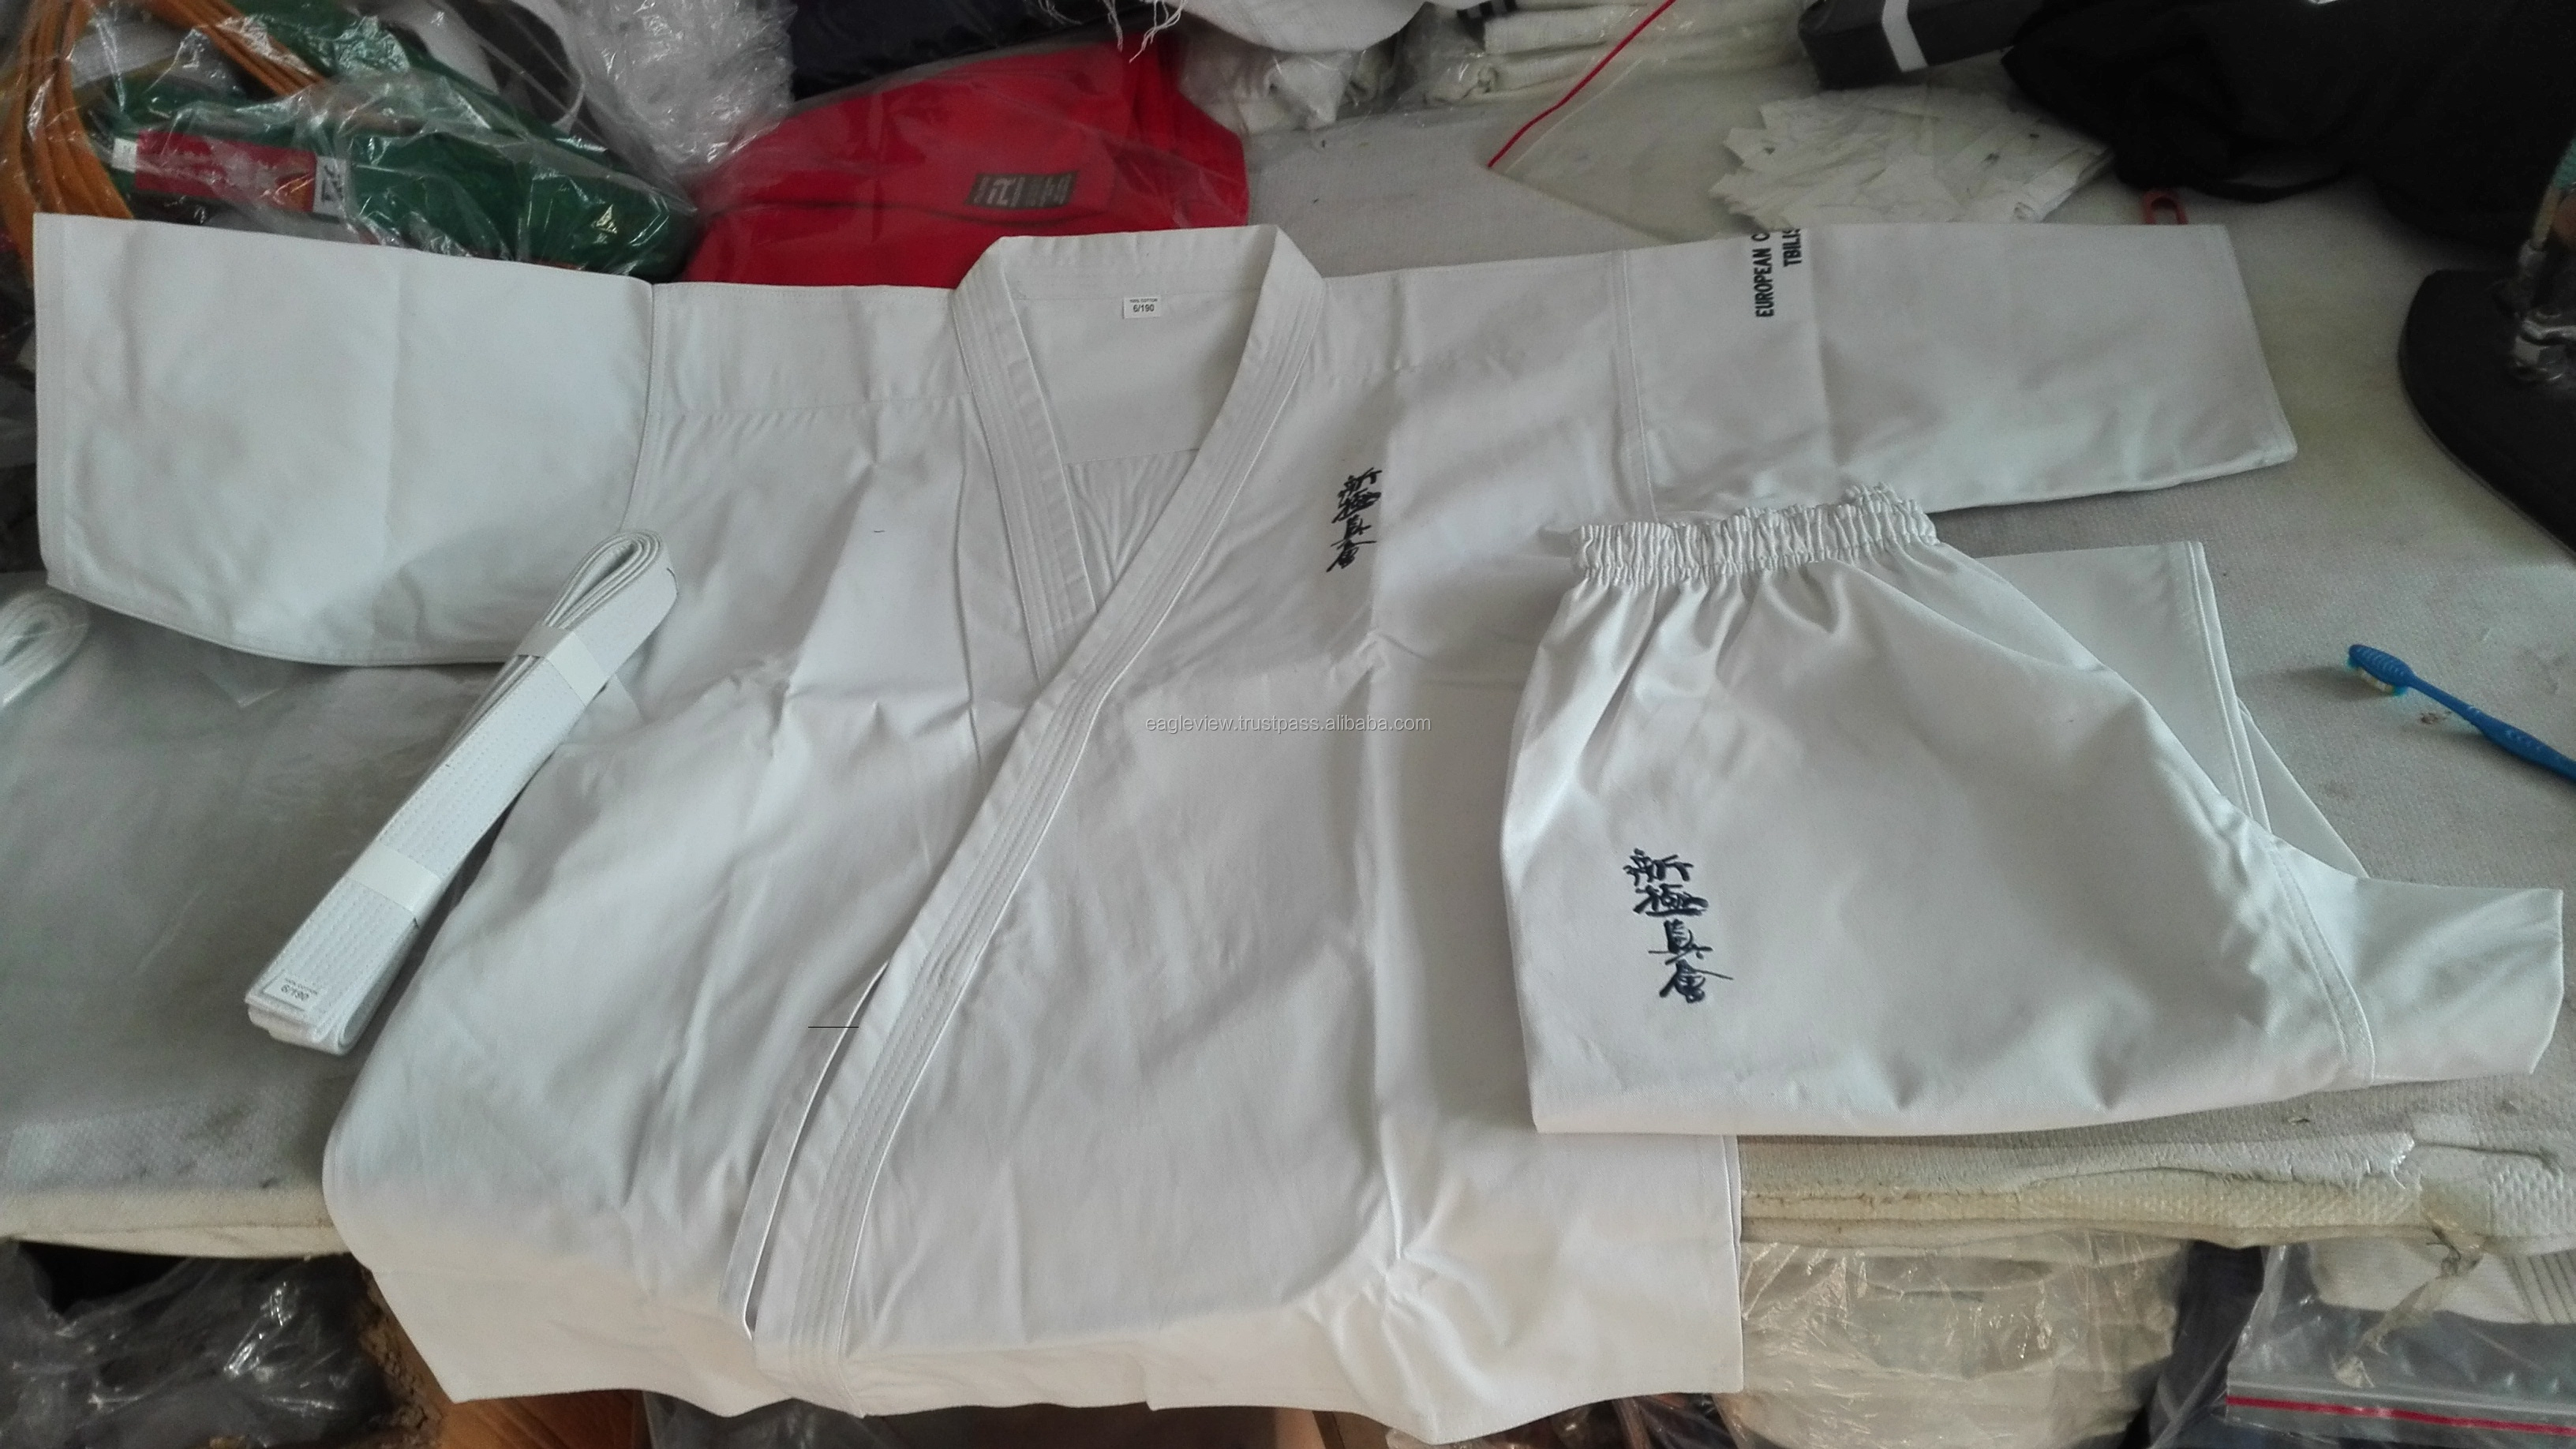 WHITE CHEAP STUDENT KARATE UNIFORM MADE OF POLY COTTON 8 OZ  / MARTIAL ARTS TRAINING SUITS WITH BELT